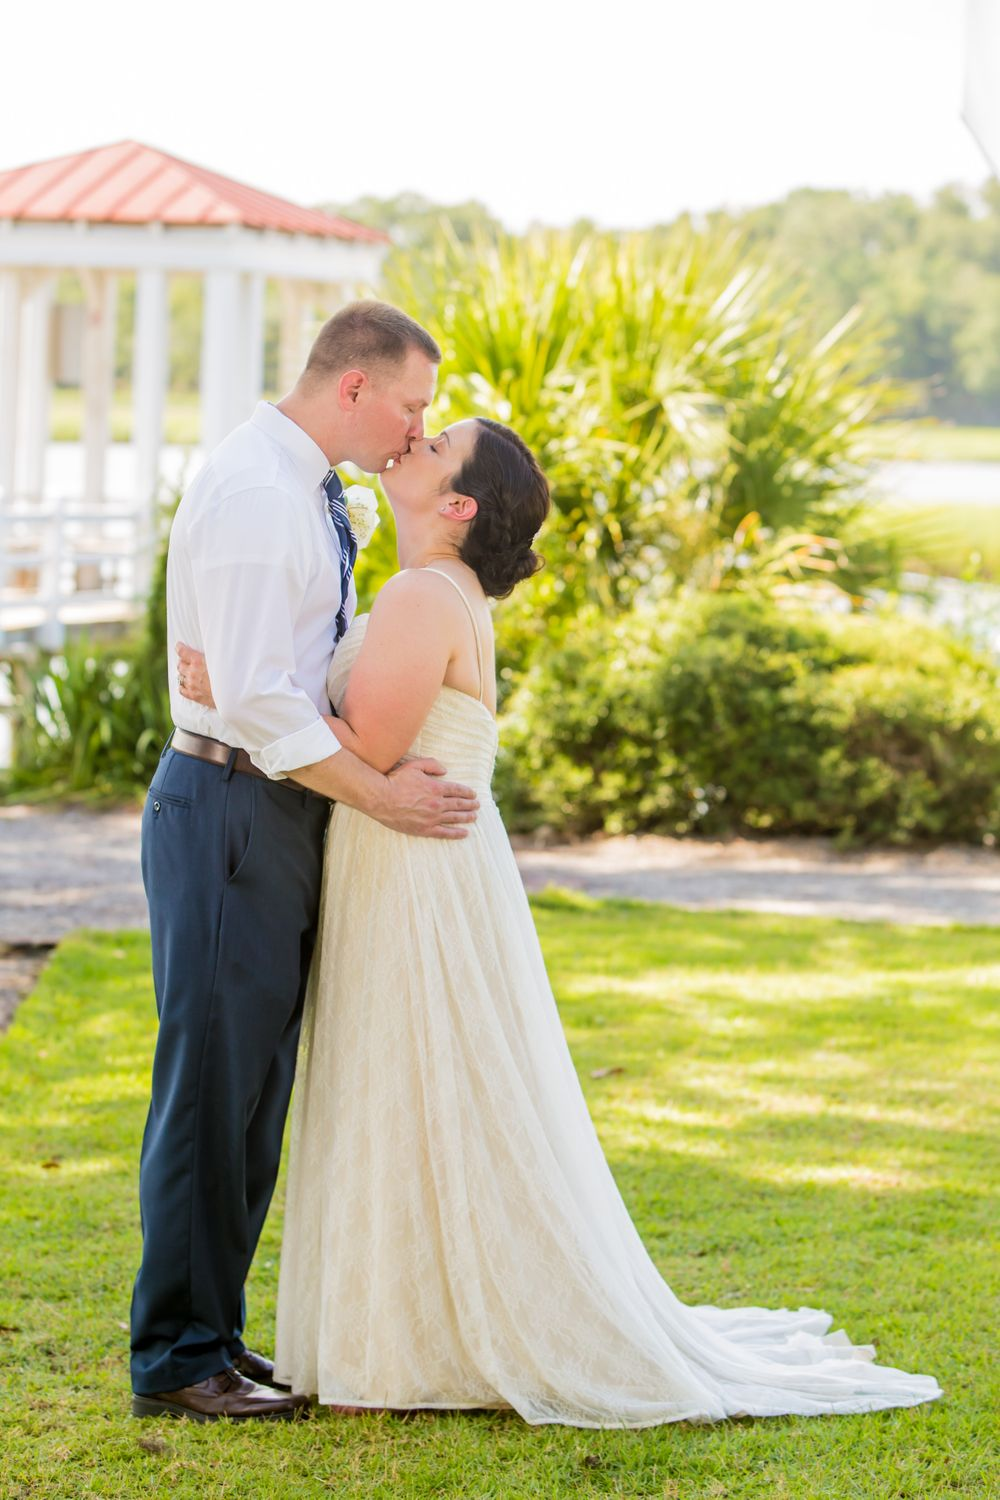 Bride Clare and groom Curtis kiss following their wedding ceremony at I'On Club in Mt. Pleasant, SC